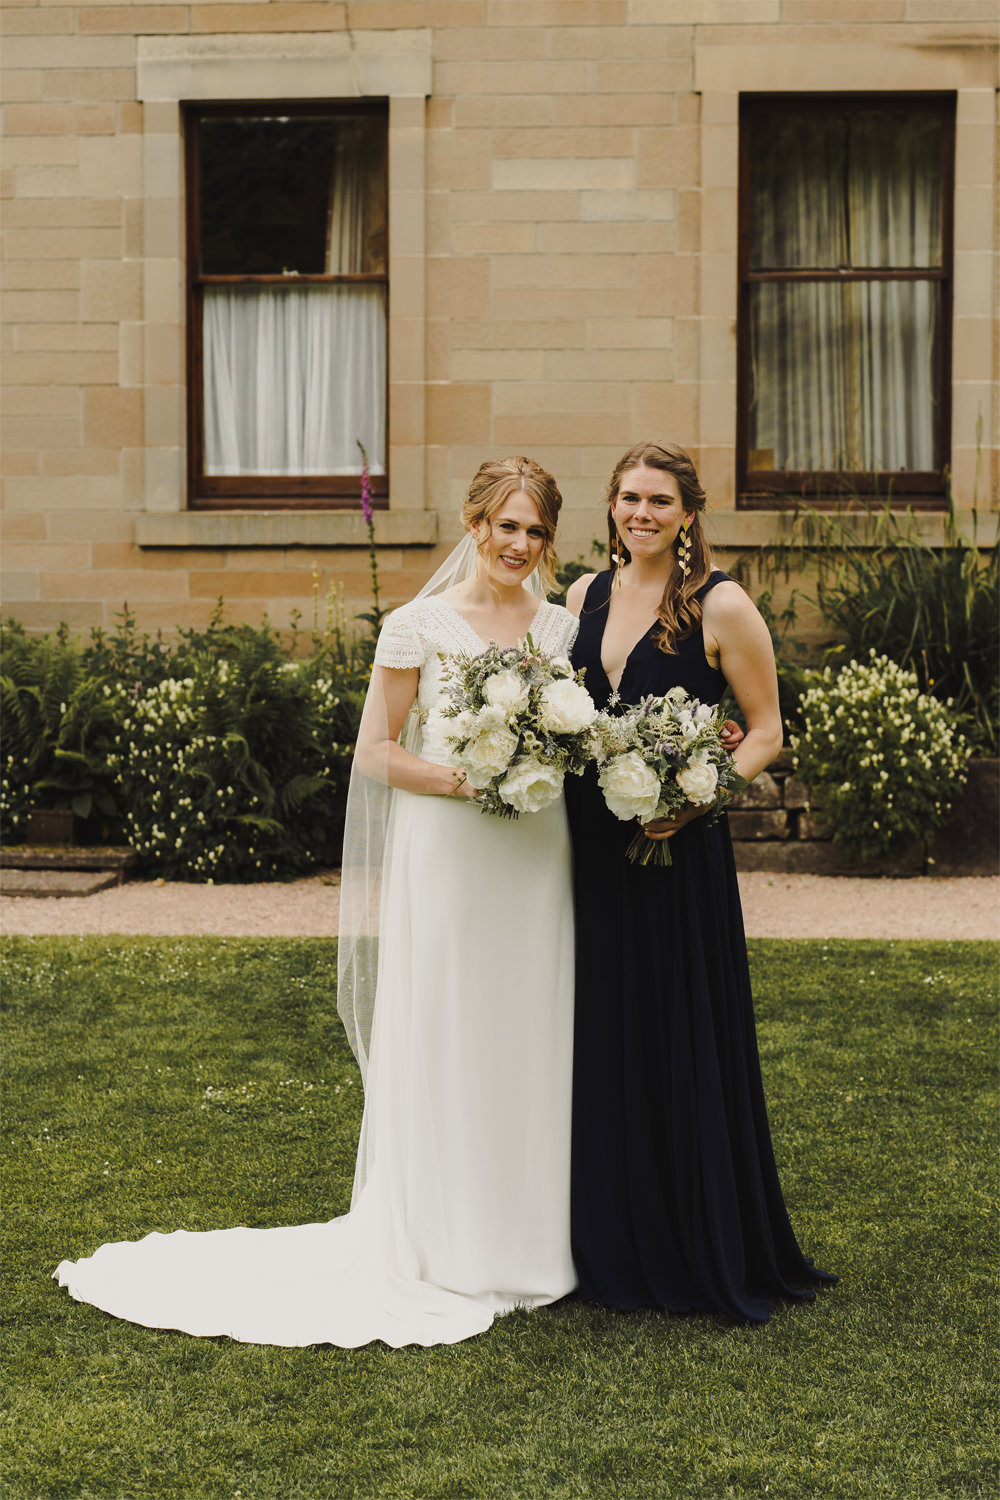 Bridesmaids Bridesmaid Dress Dresses Navy Estate Wedding Anna Urban Wedding Photography